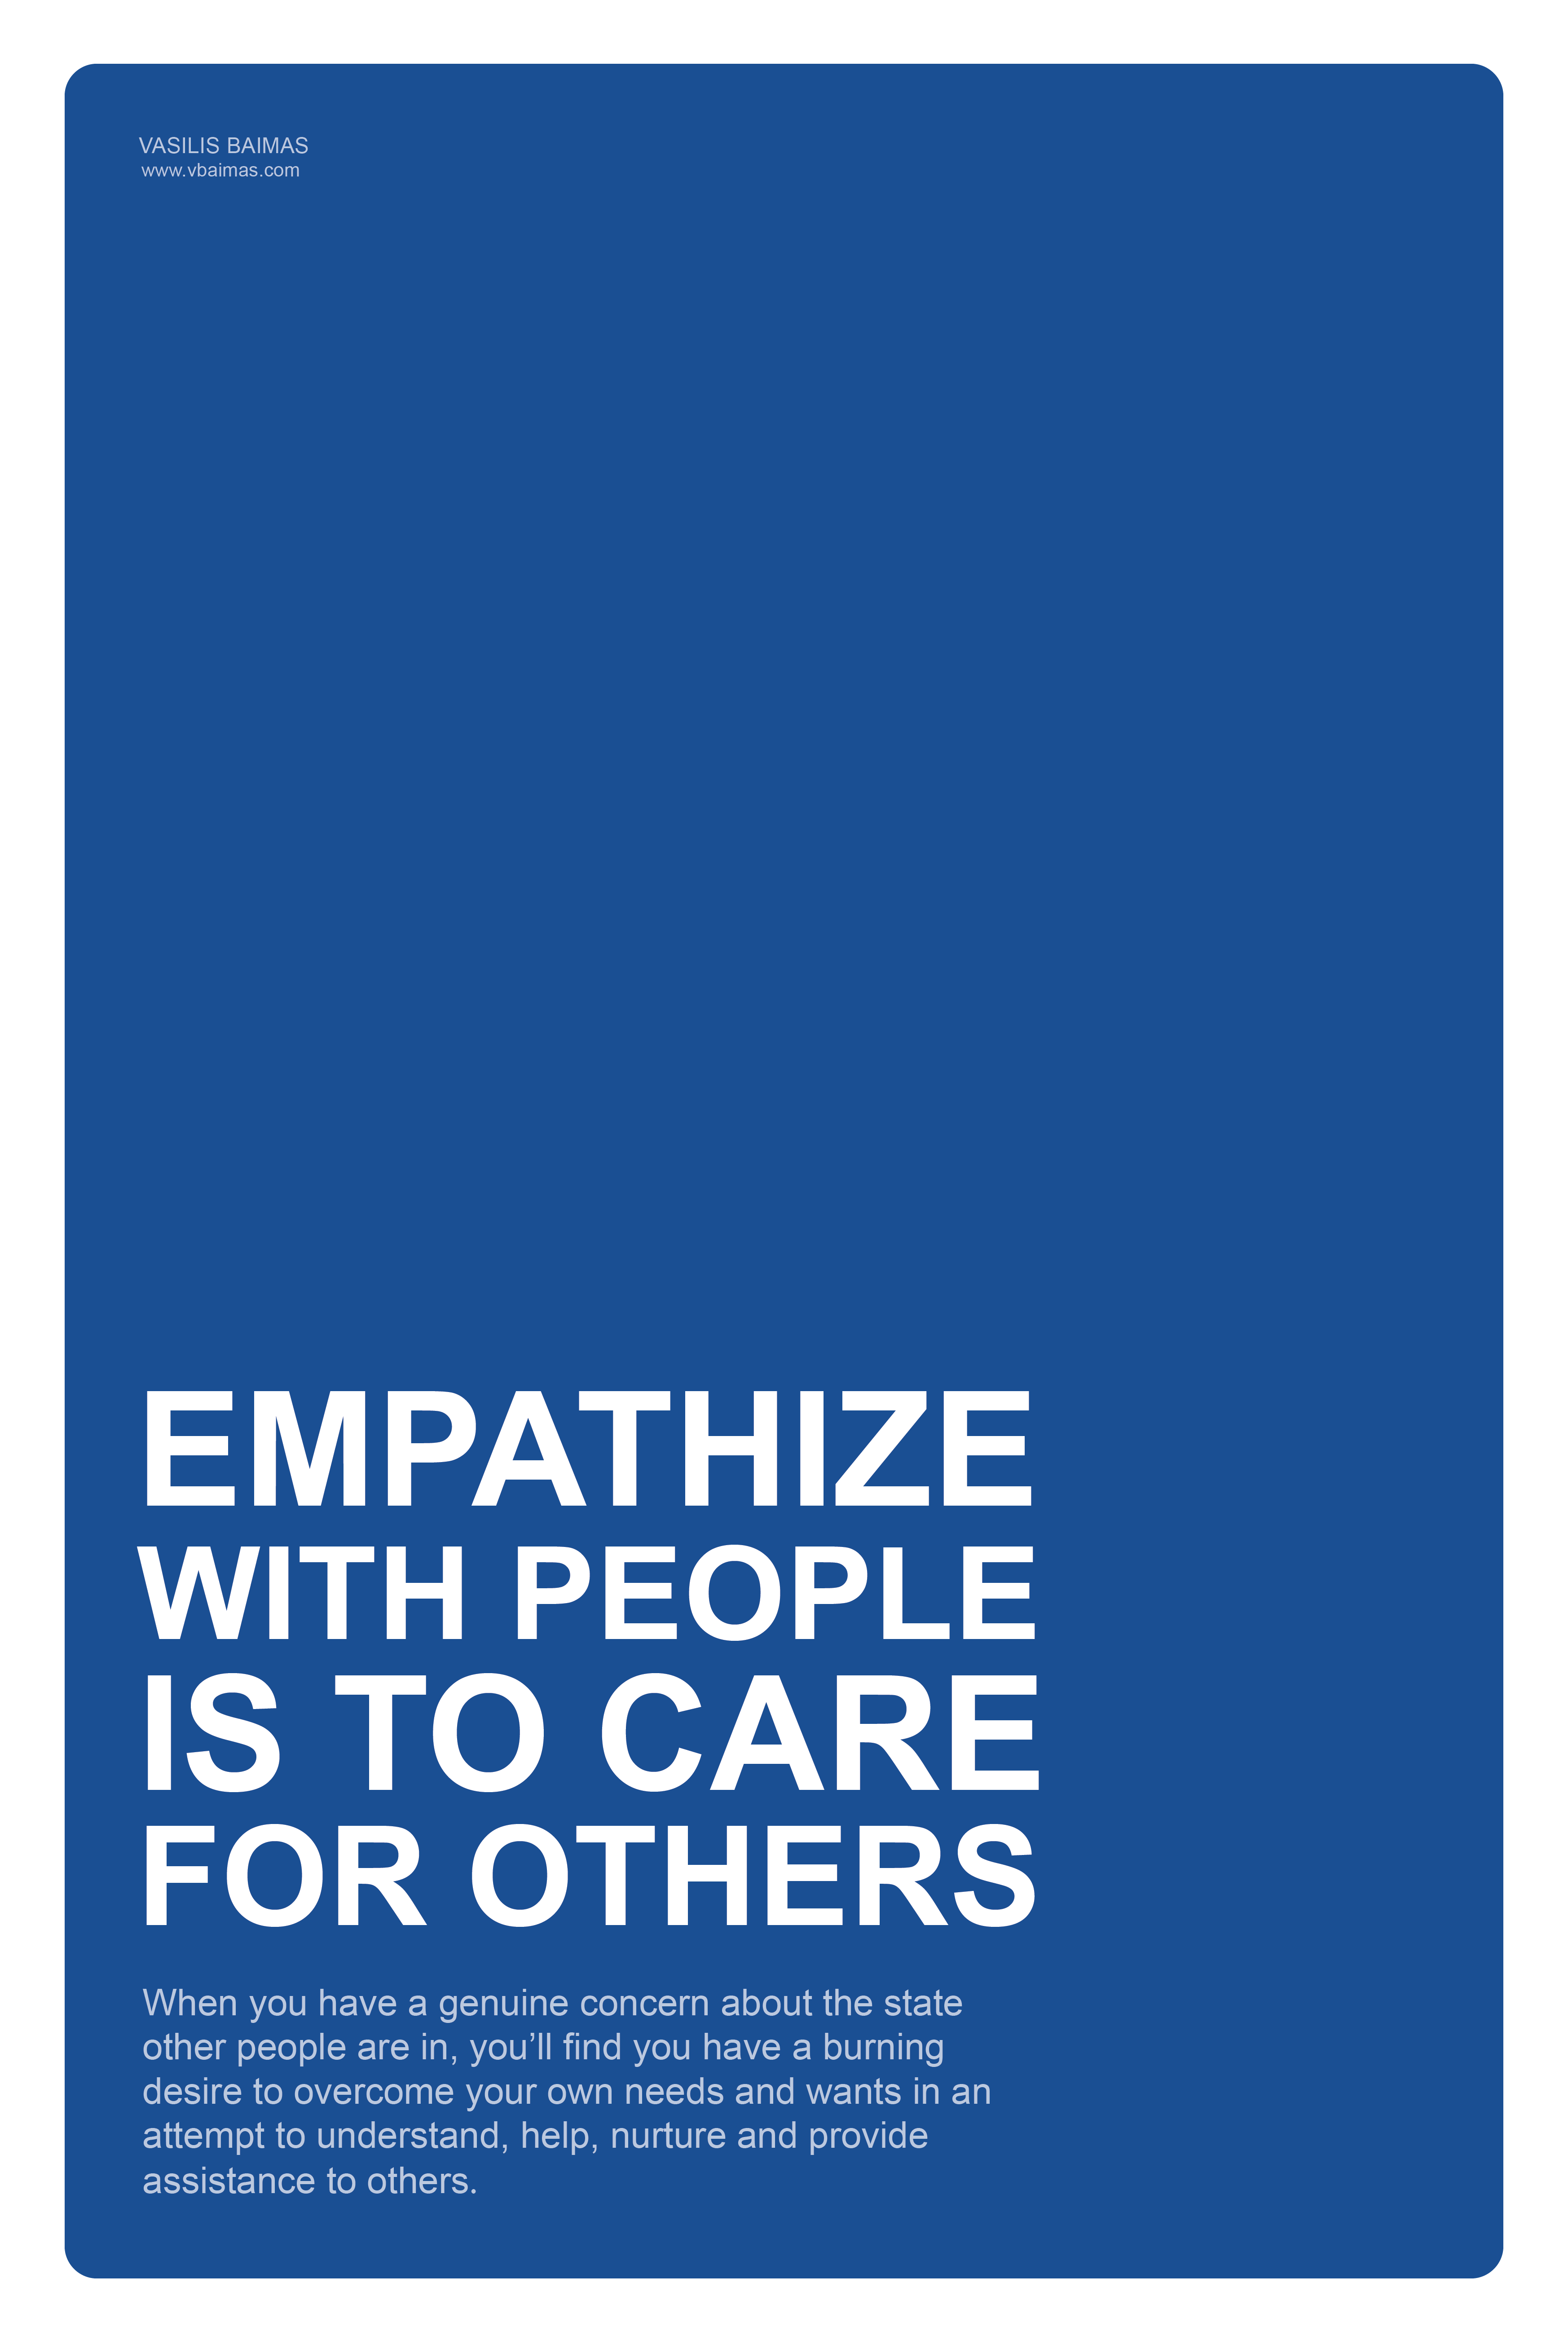 empathize with people is to care for others